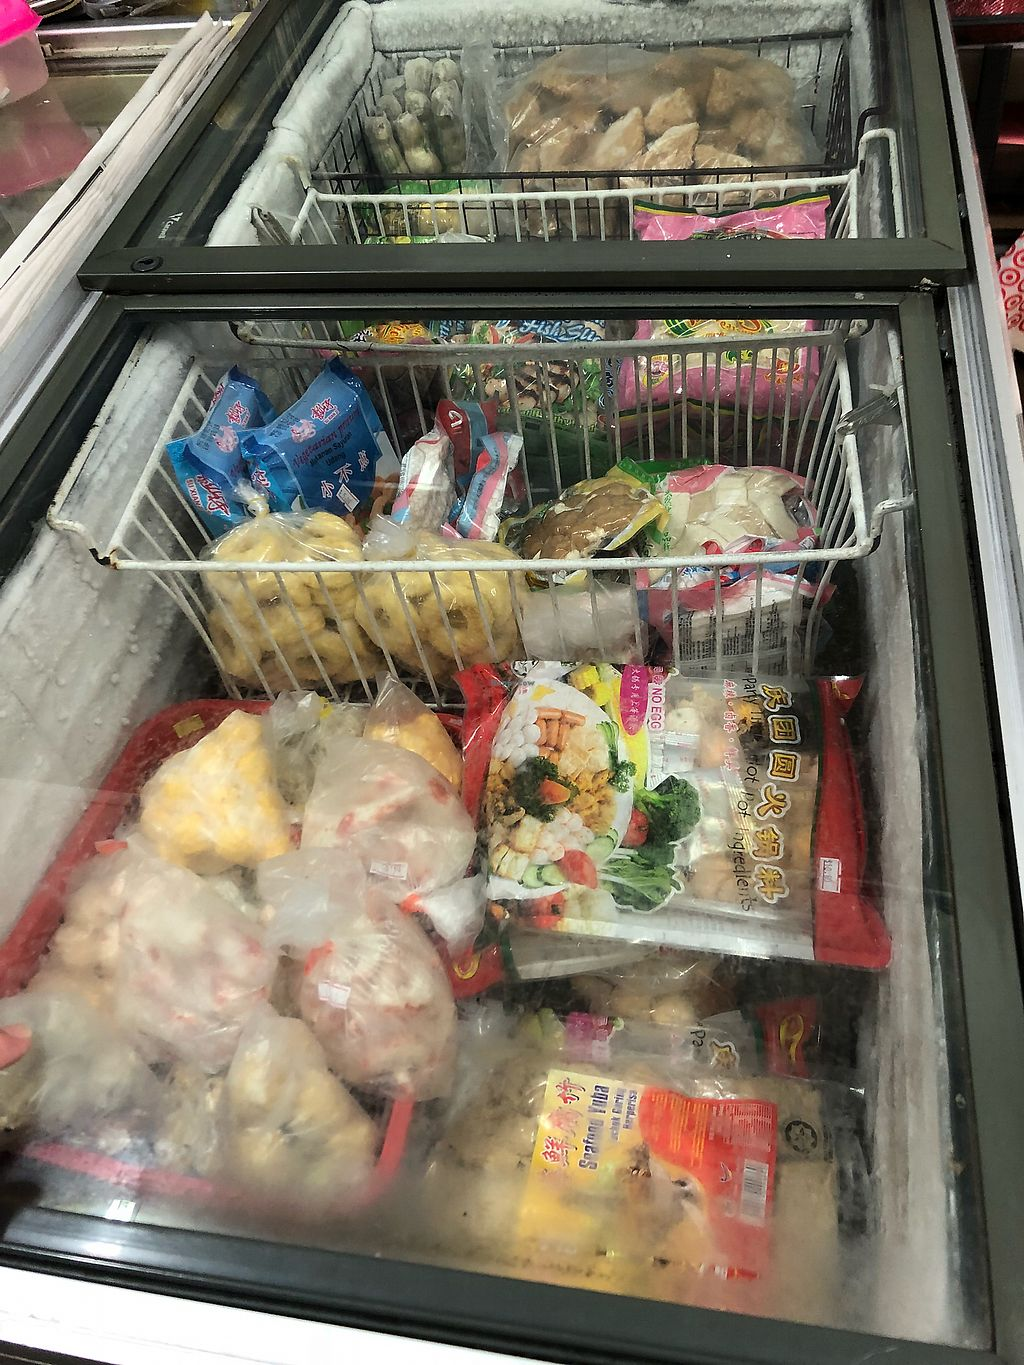 """Photo of Tay Hock Hoon Provision  by <a href=""""/members/profile/AmyLeySzeThoo"""">AmyLeySzeThoo</a> <br/>Frozen food <br/> April 7, 2018  - <a href='/contact/abuse/image/116943/381836'>Report</a>"""